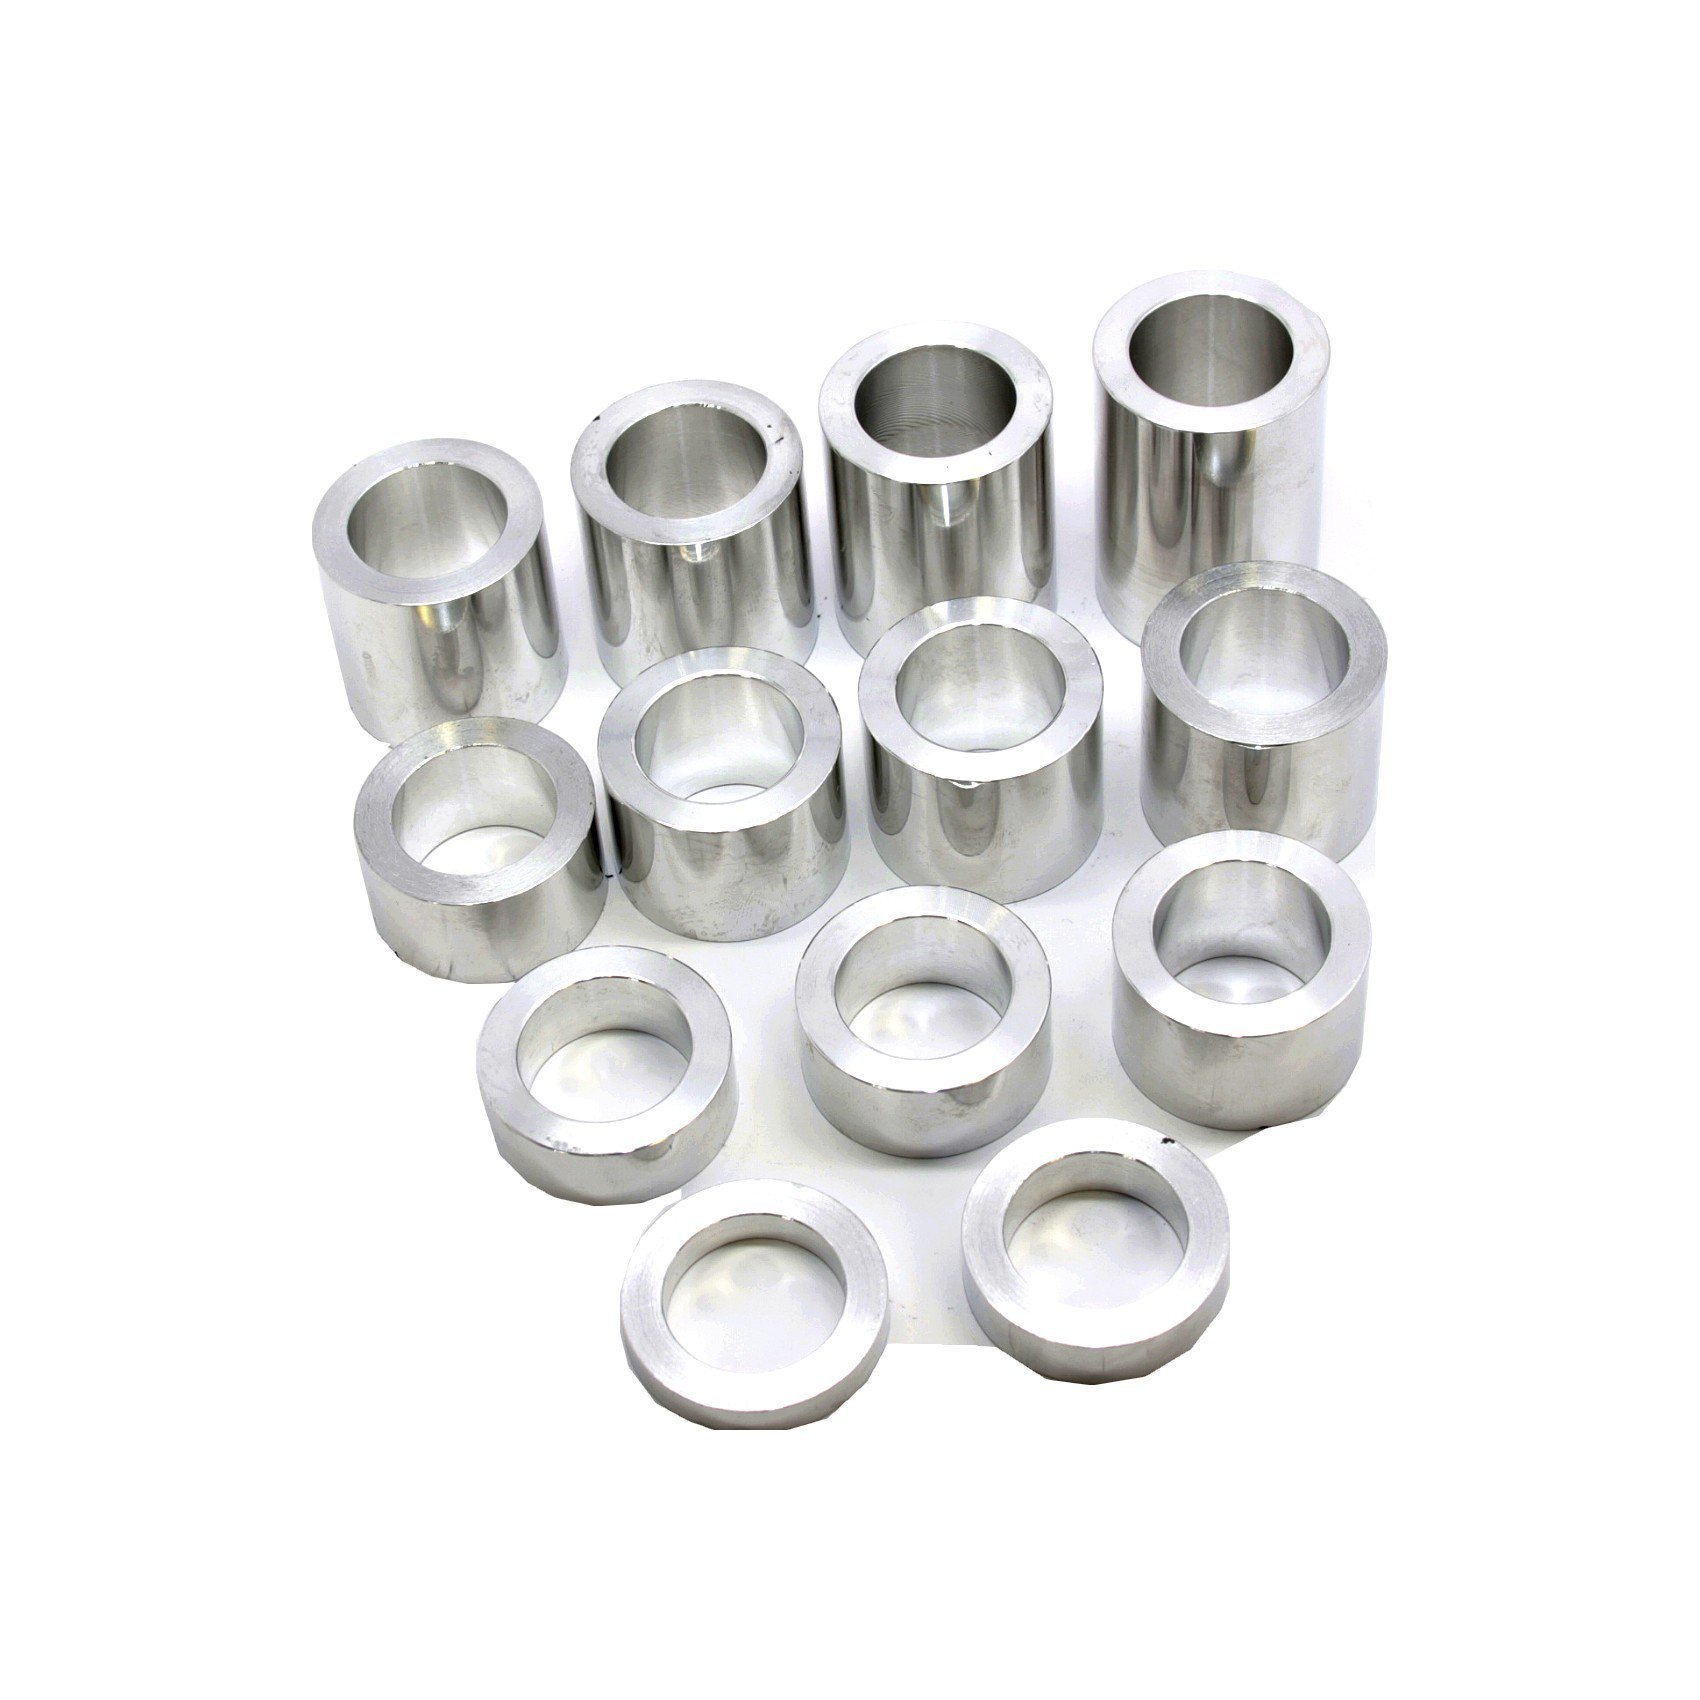 Wheel Axle Spacer Kit I.D. 25mm - O.D. 1-1/2'' (1.50) - 13 Spacers Polished